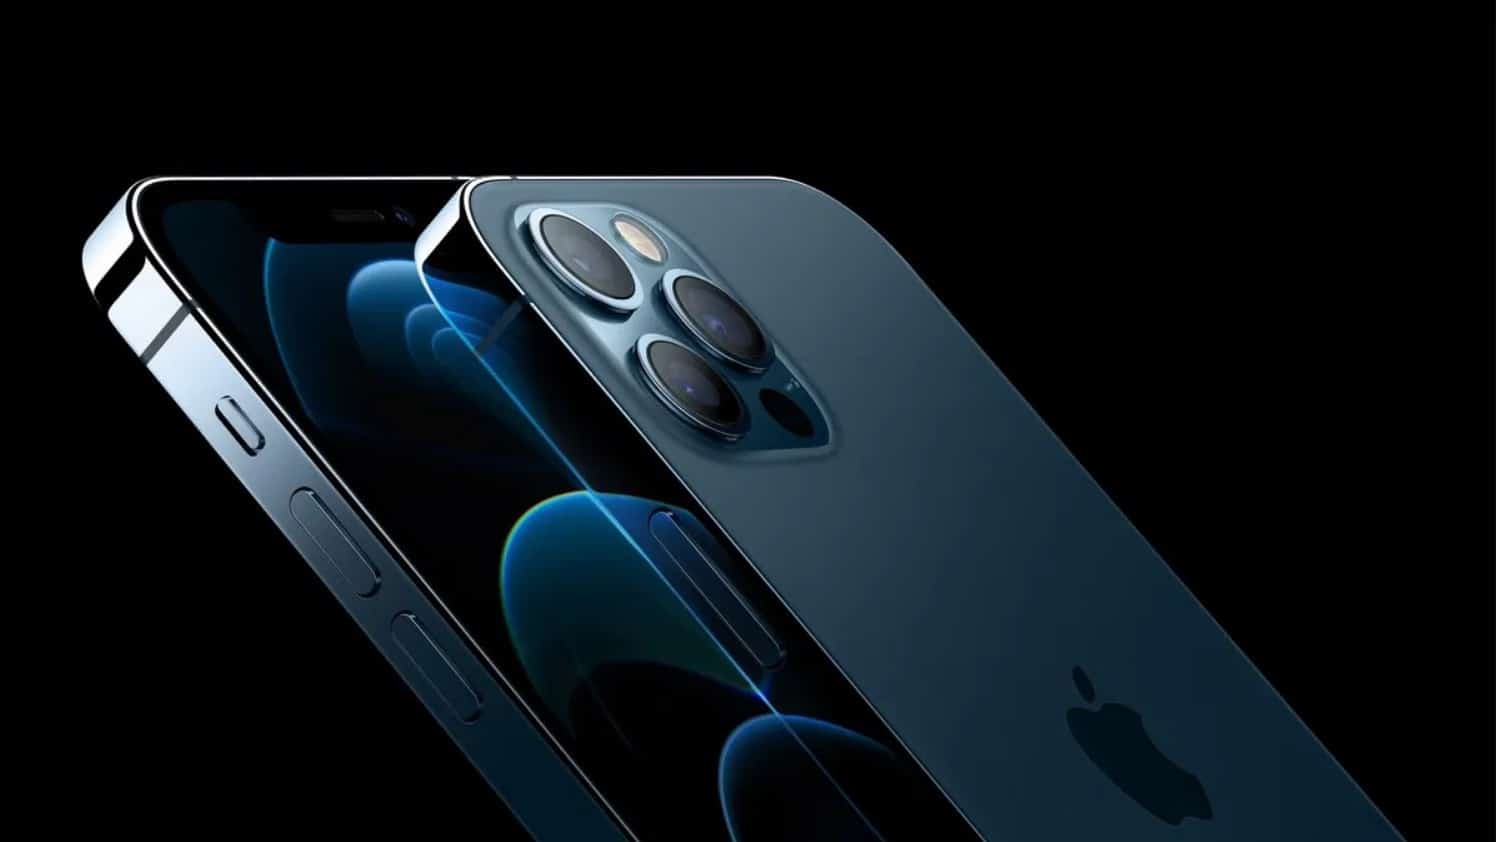 iPhone 13: The Camera could be even better in Low Light